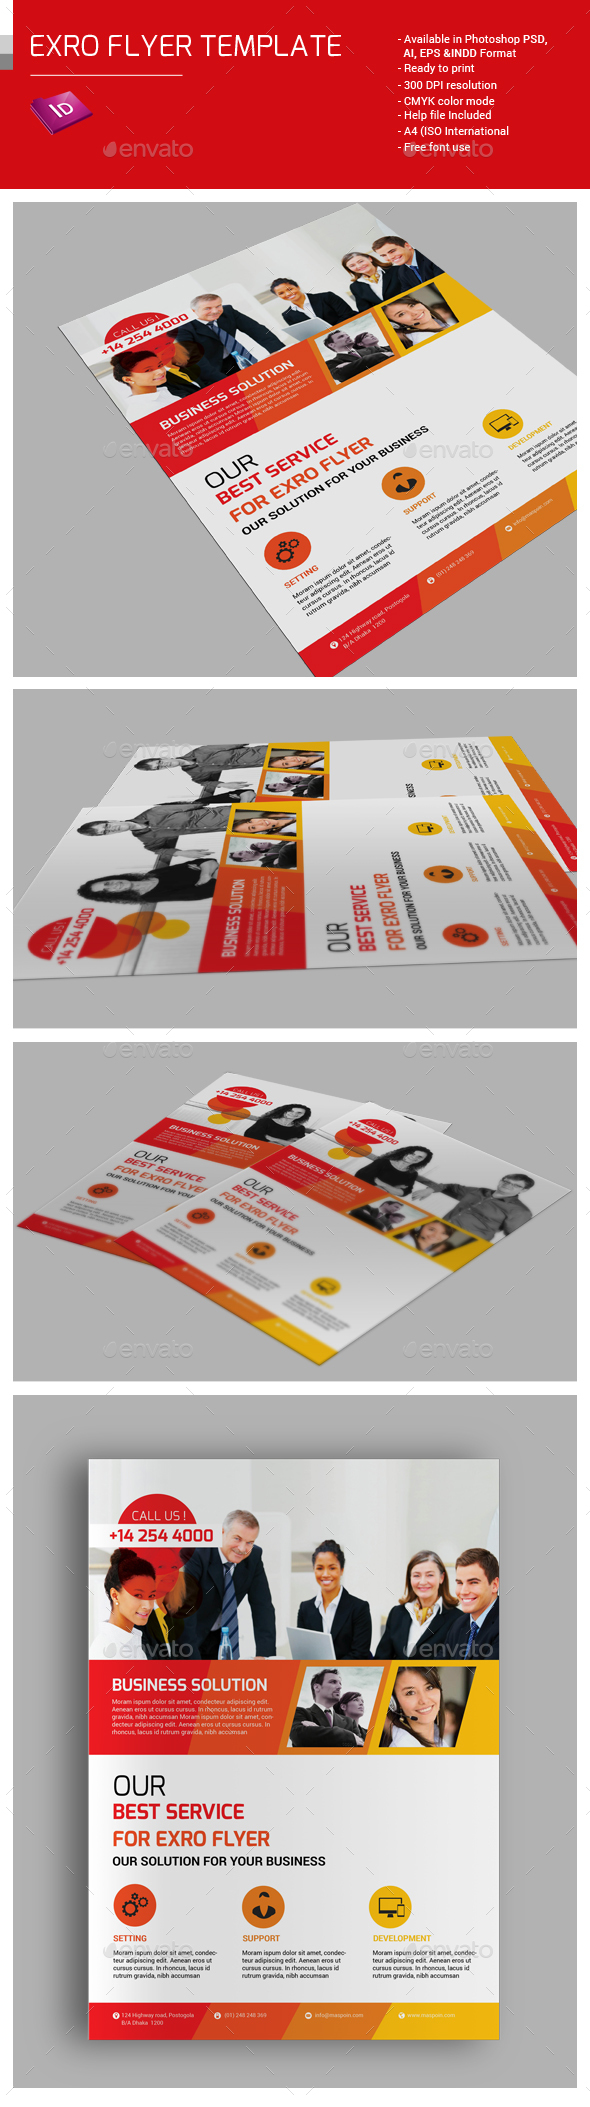 Exro Flyer Template - Corporate Flyers